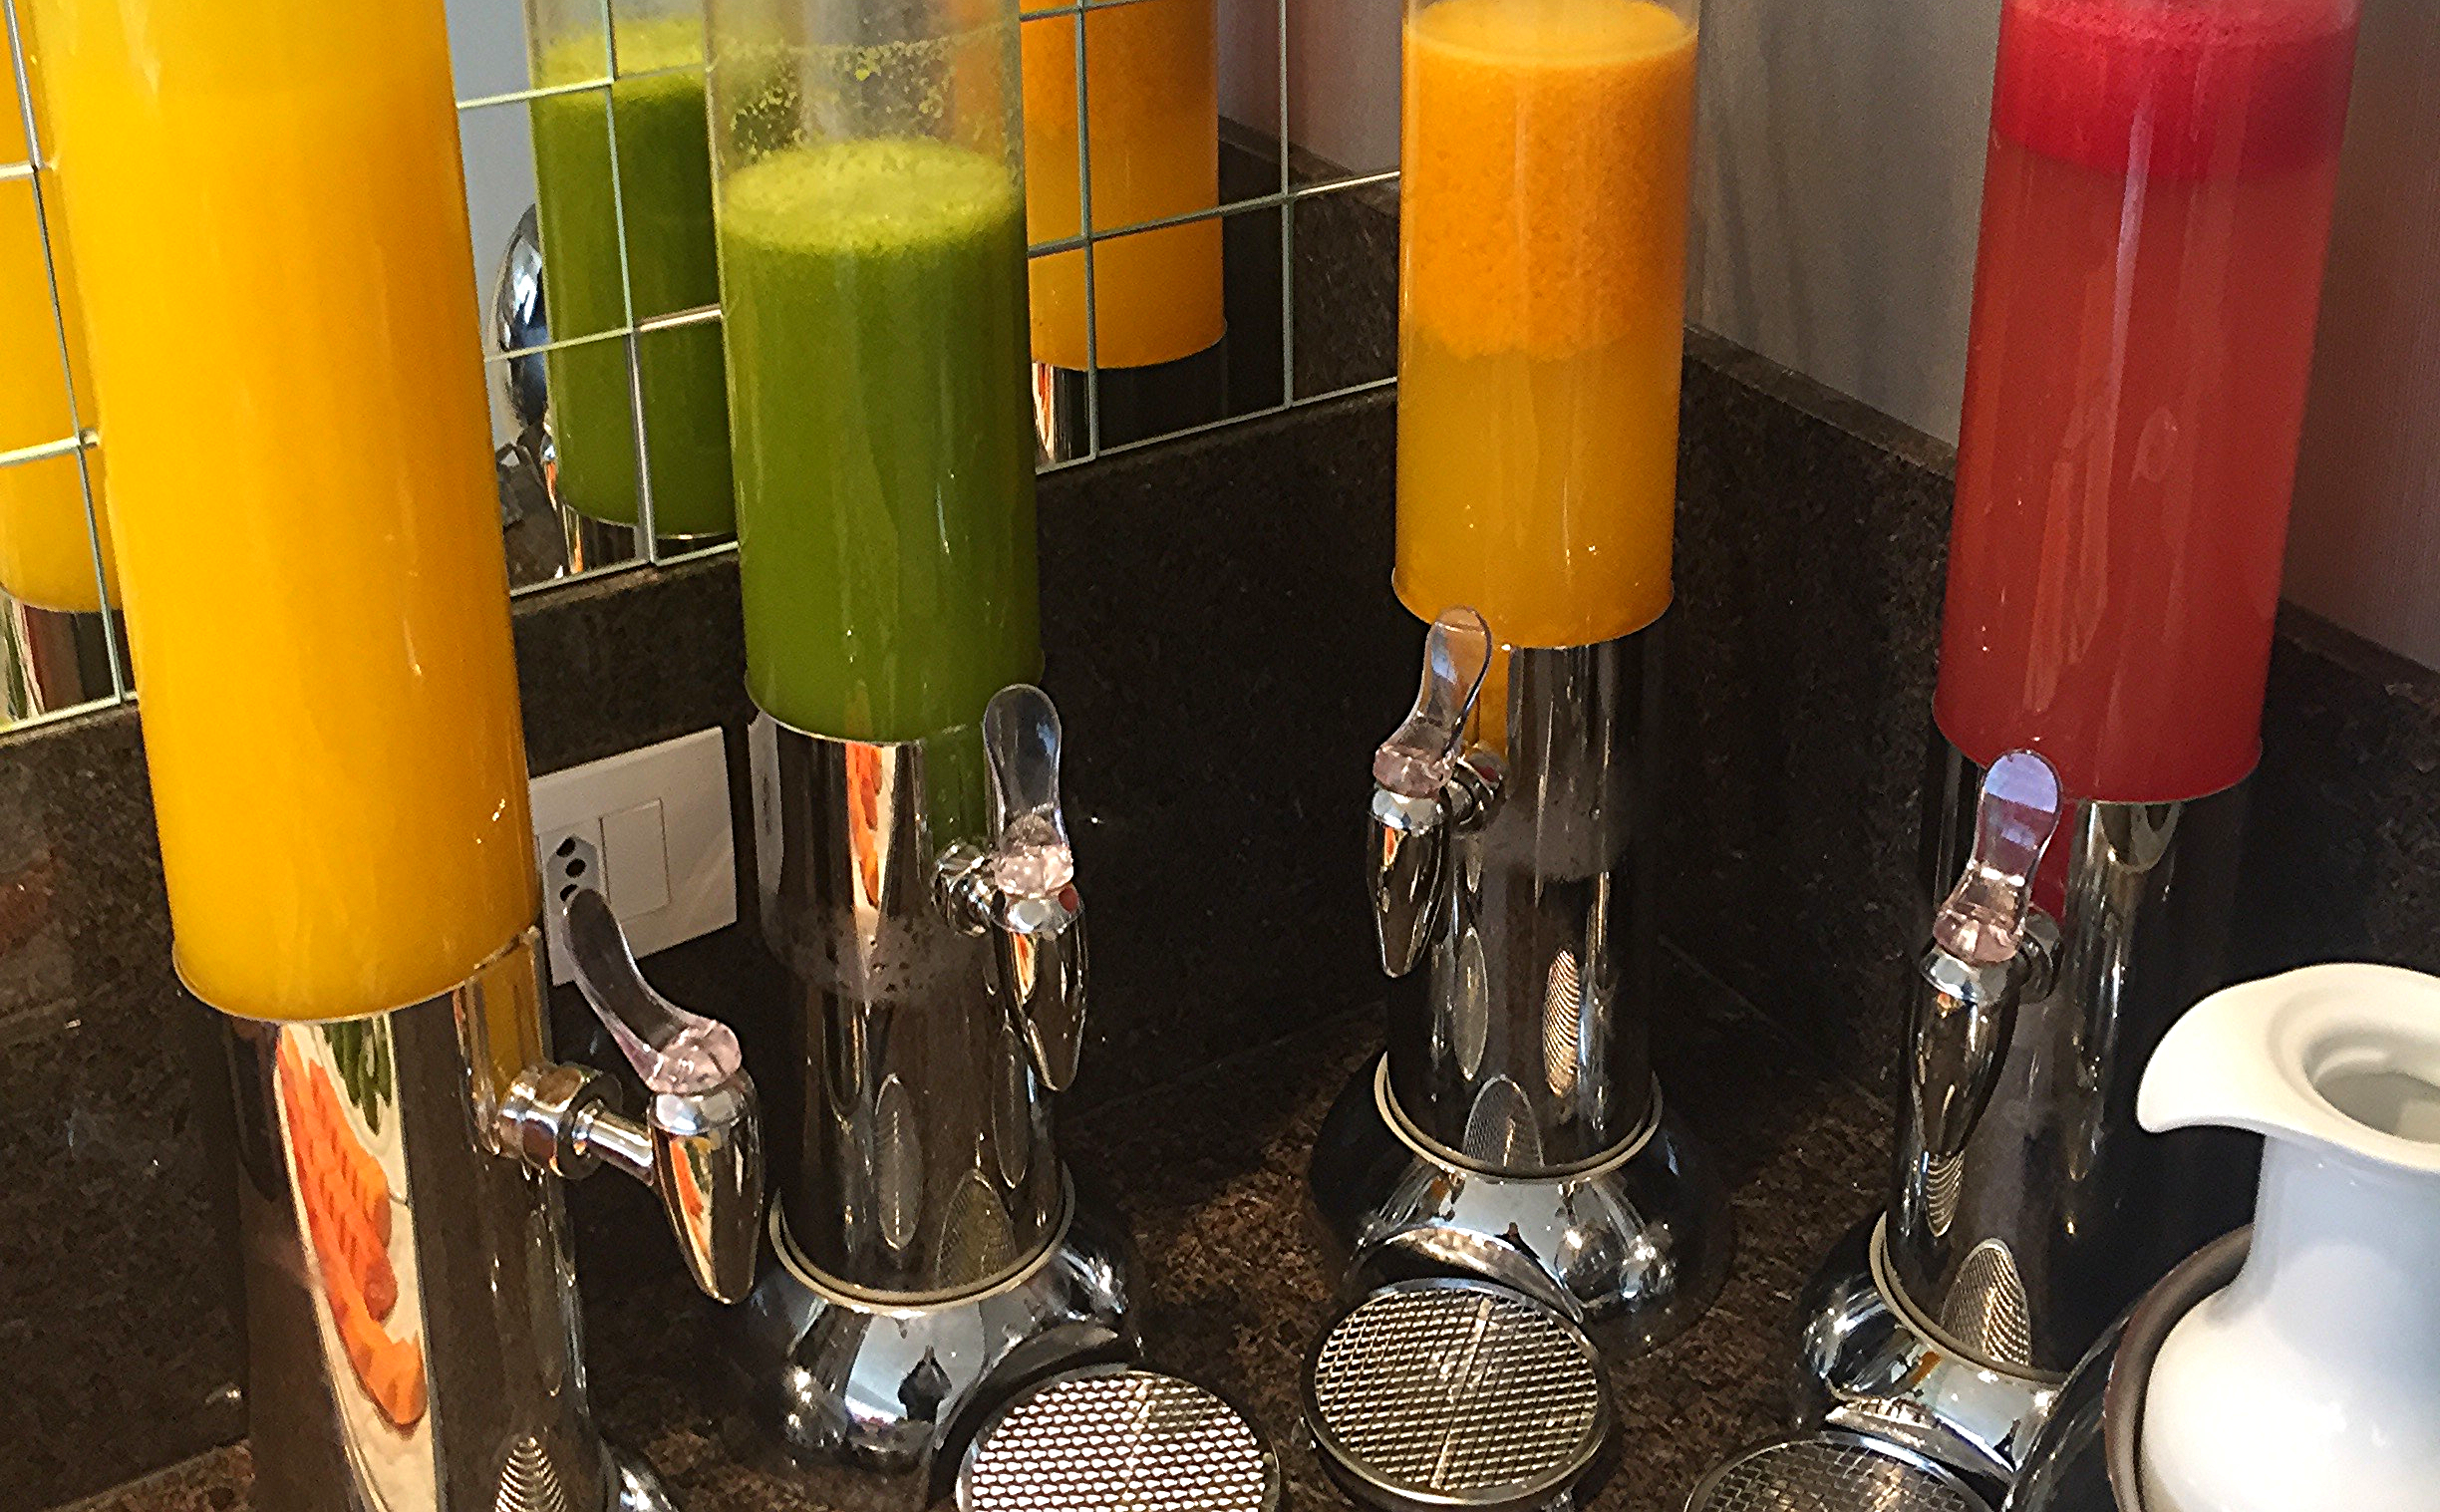 Fresh Squeezed Juices: Orange, Apple/Kale, Passion Fruit (my favorite) and Watermelon